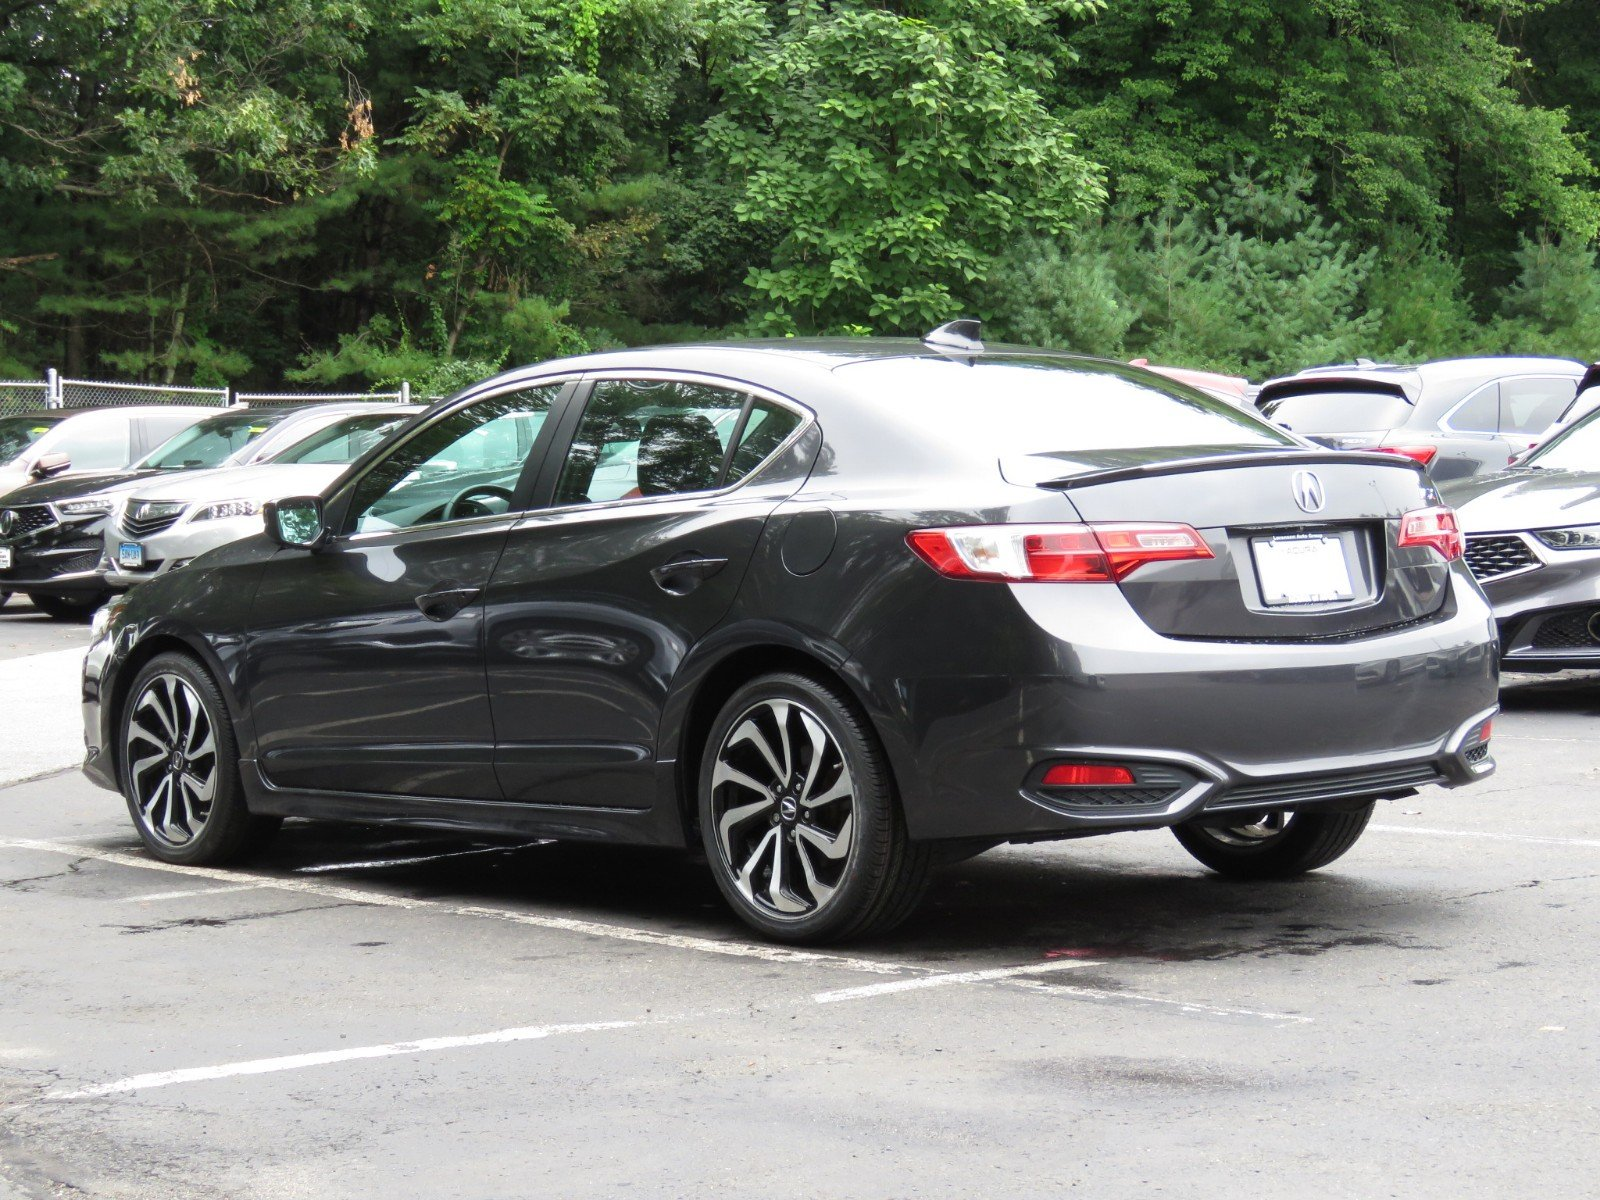 Pre Owned 2016 Acura ILX w Technology Plus A SPEC Pkg 4dr Car in